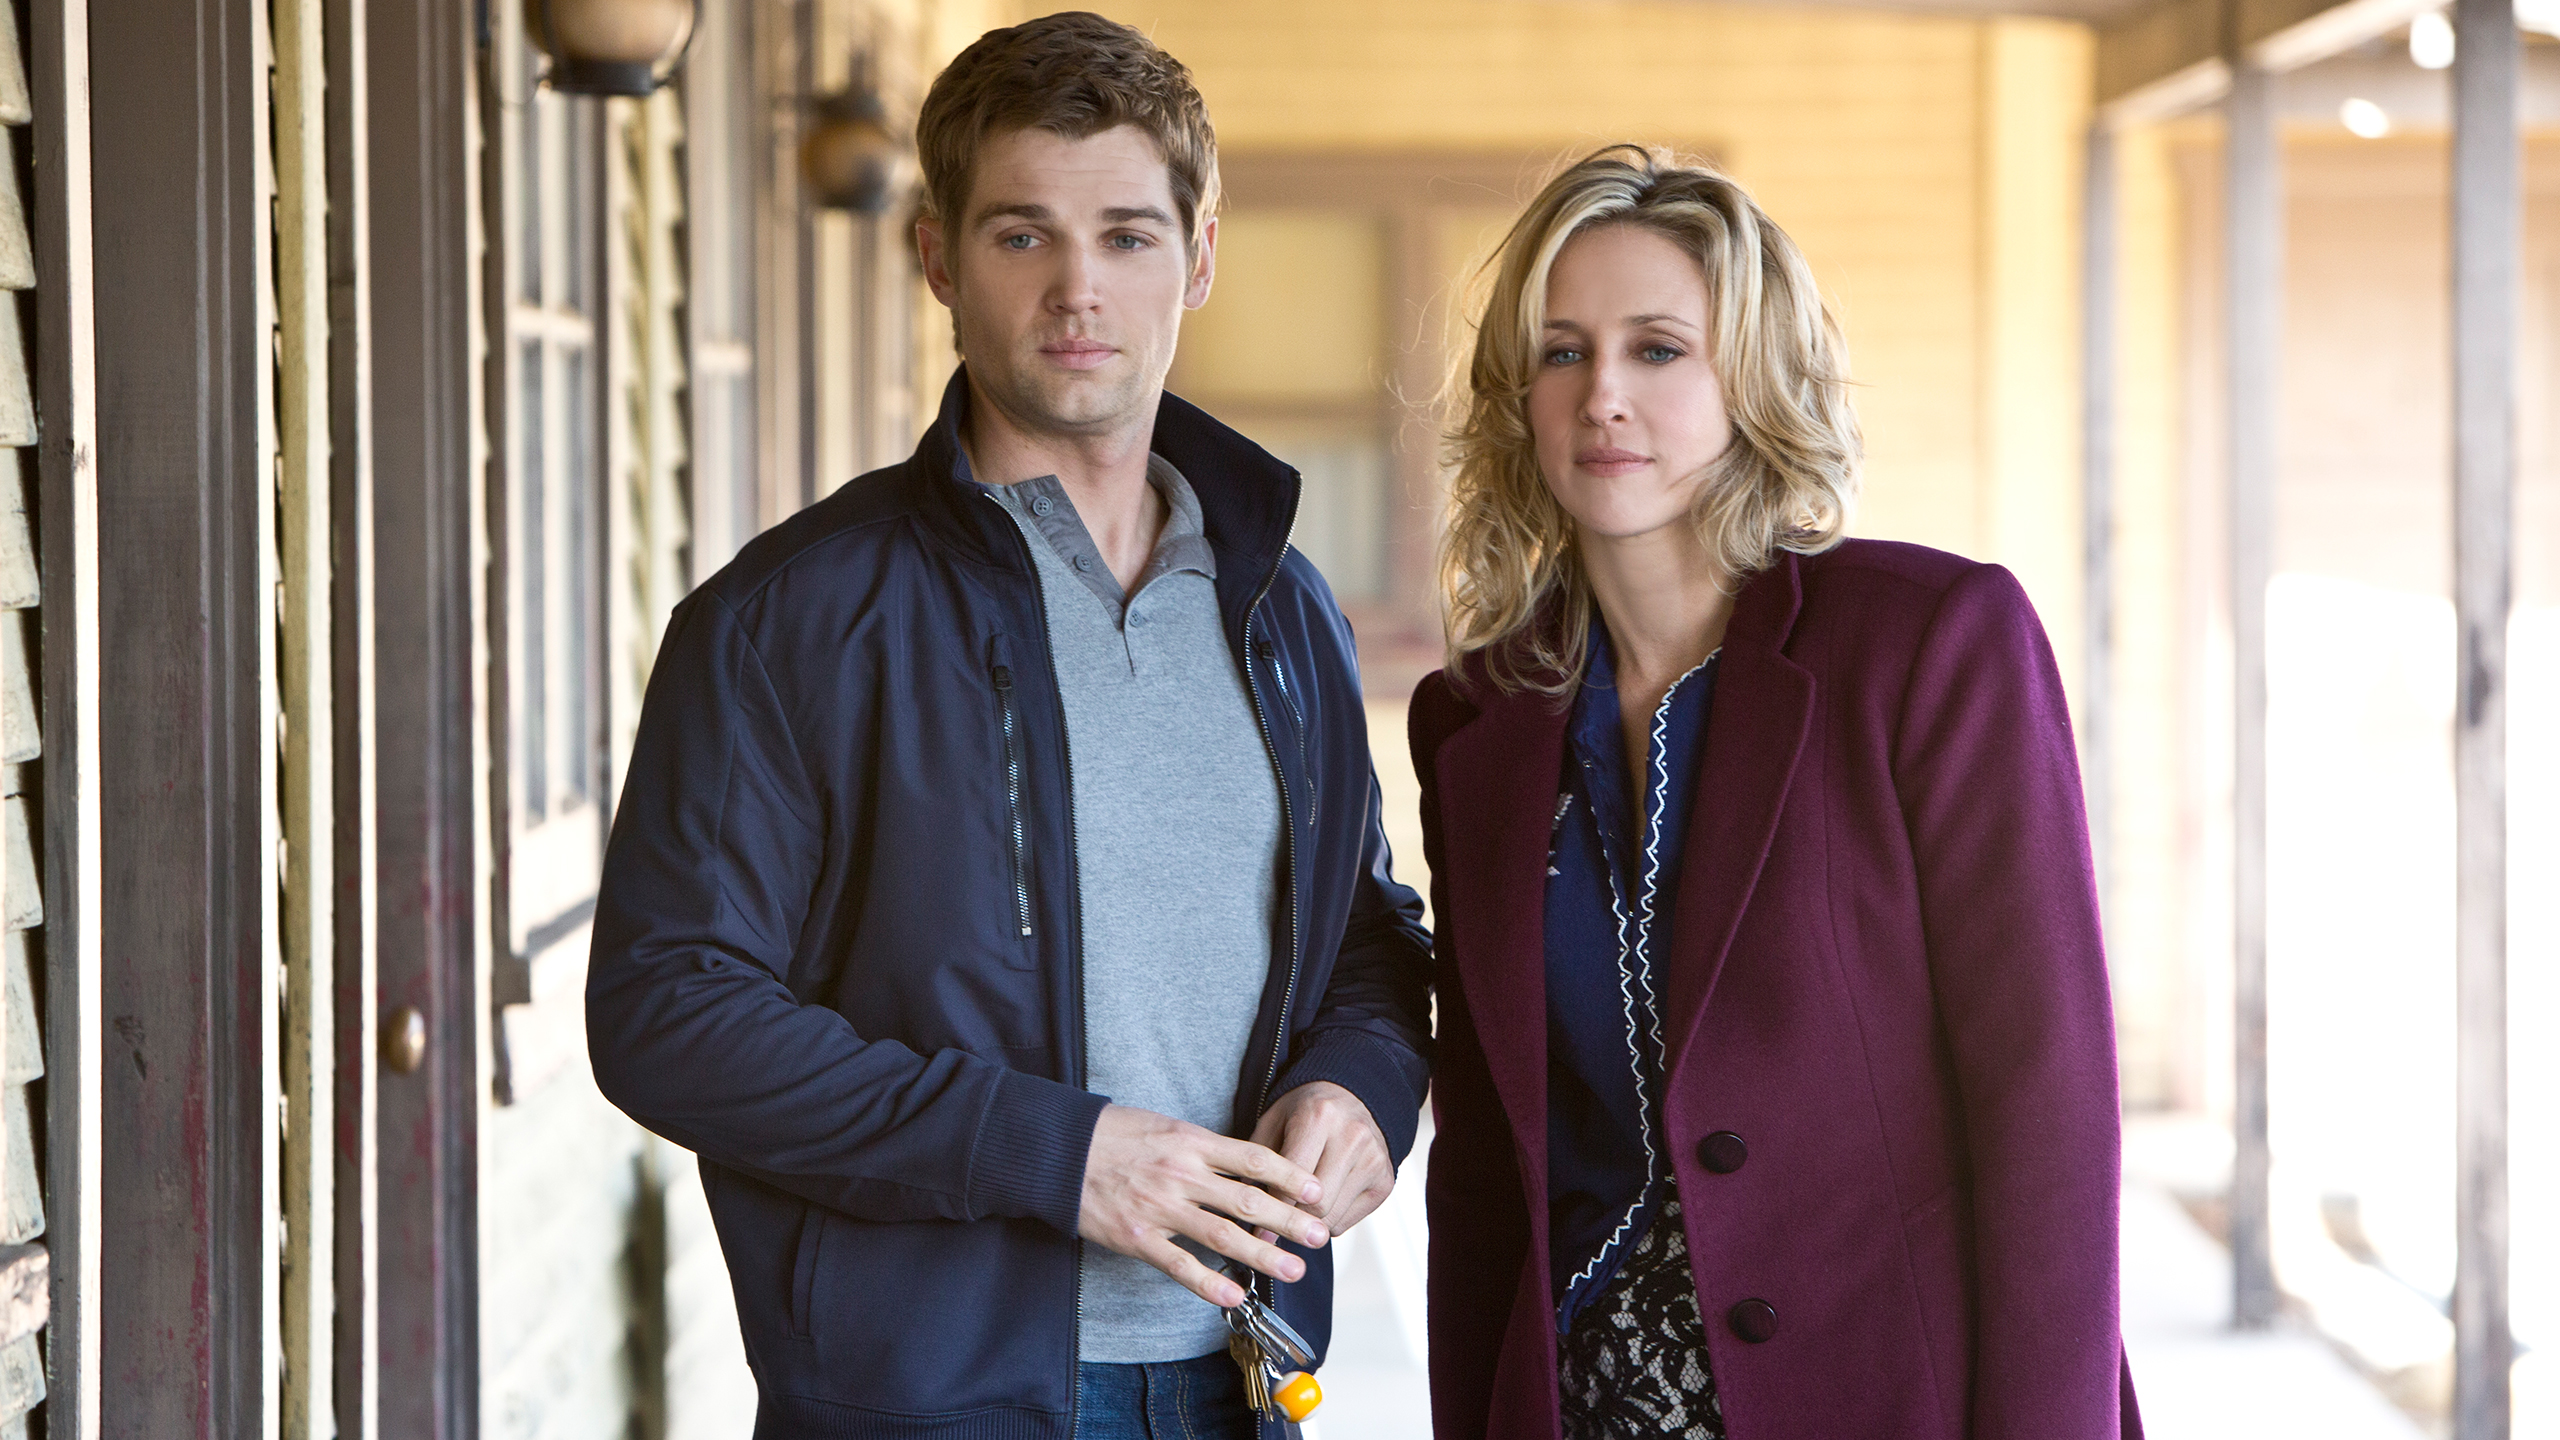 File:08-shelby-and-norma-look-guilty.jpg